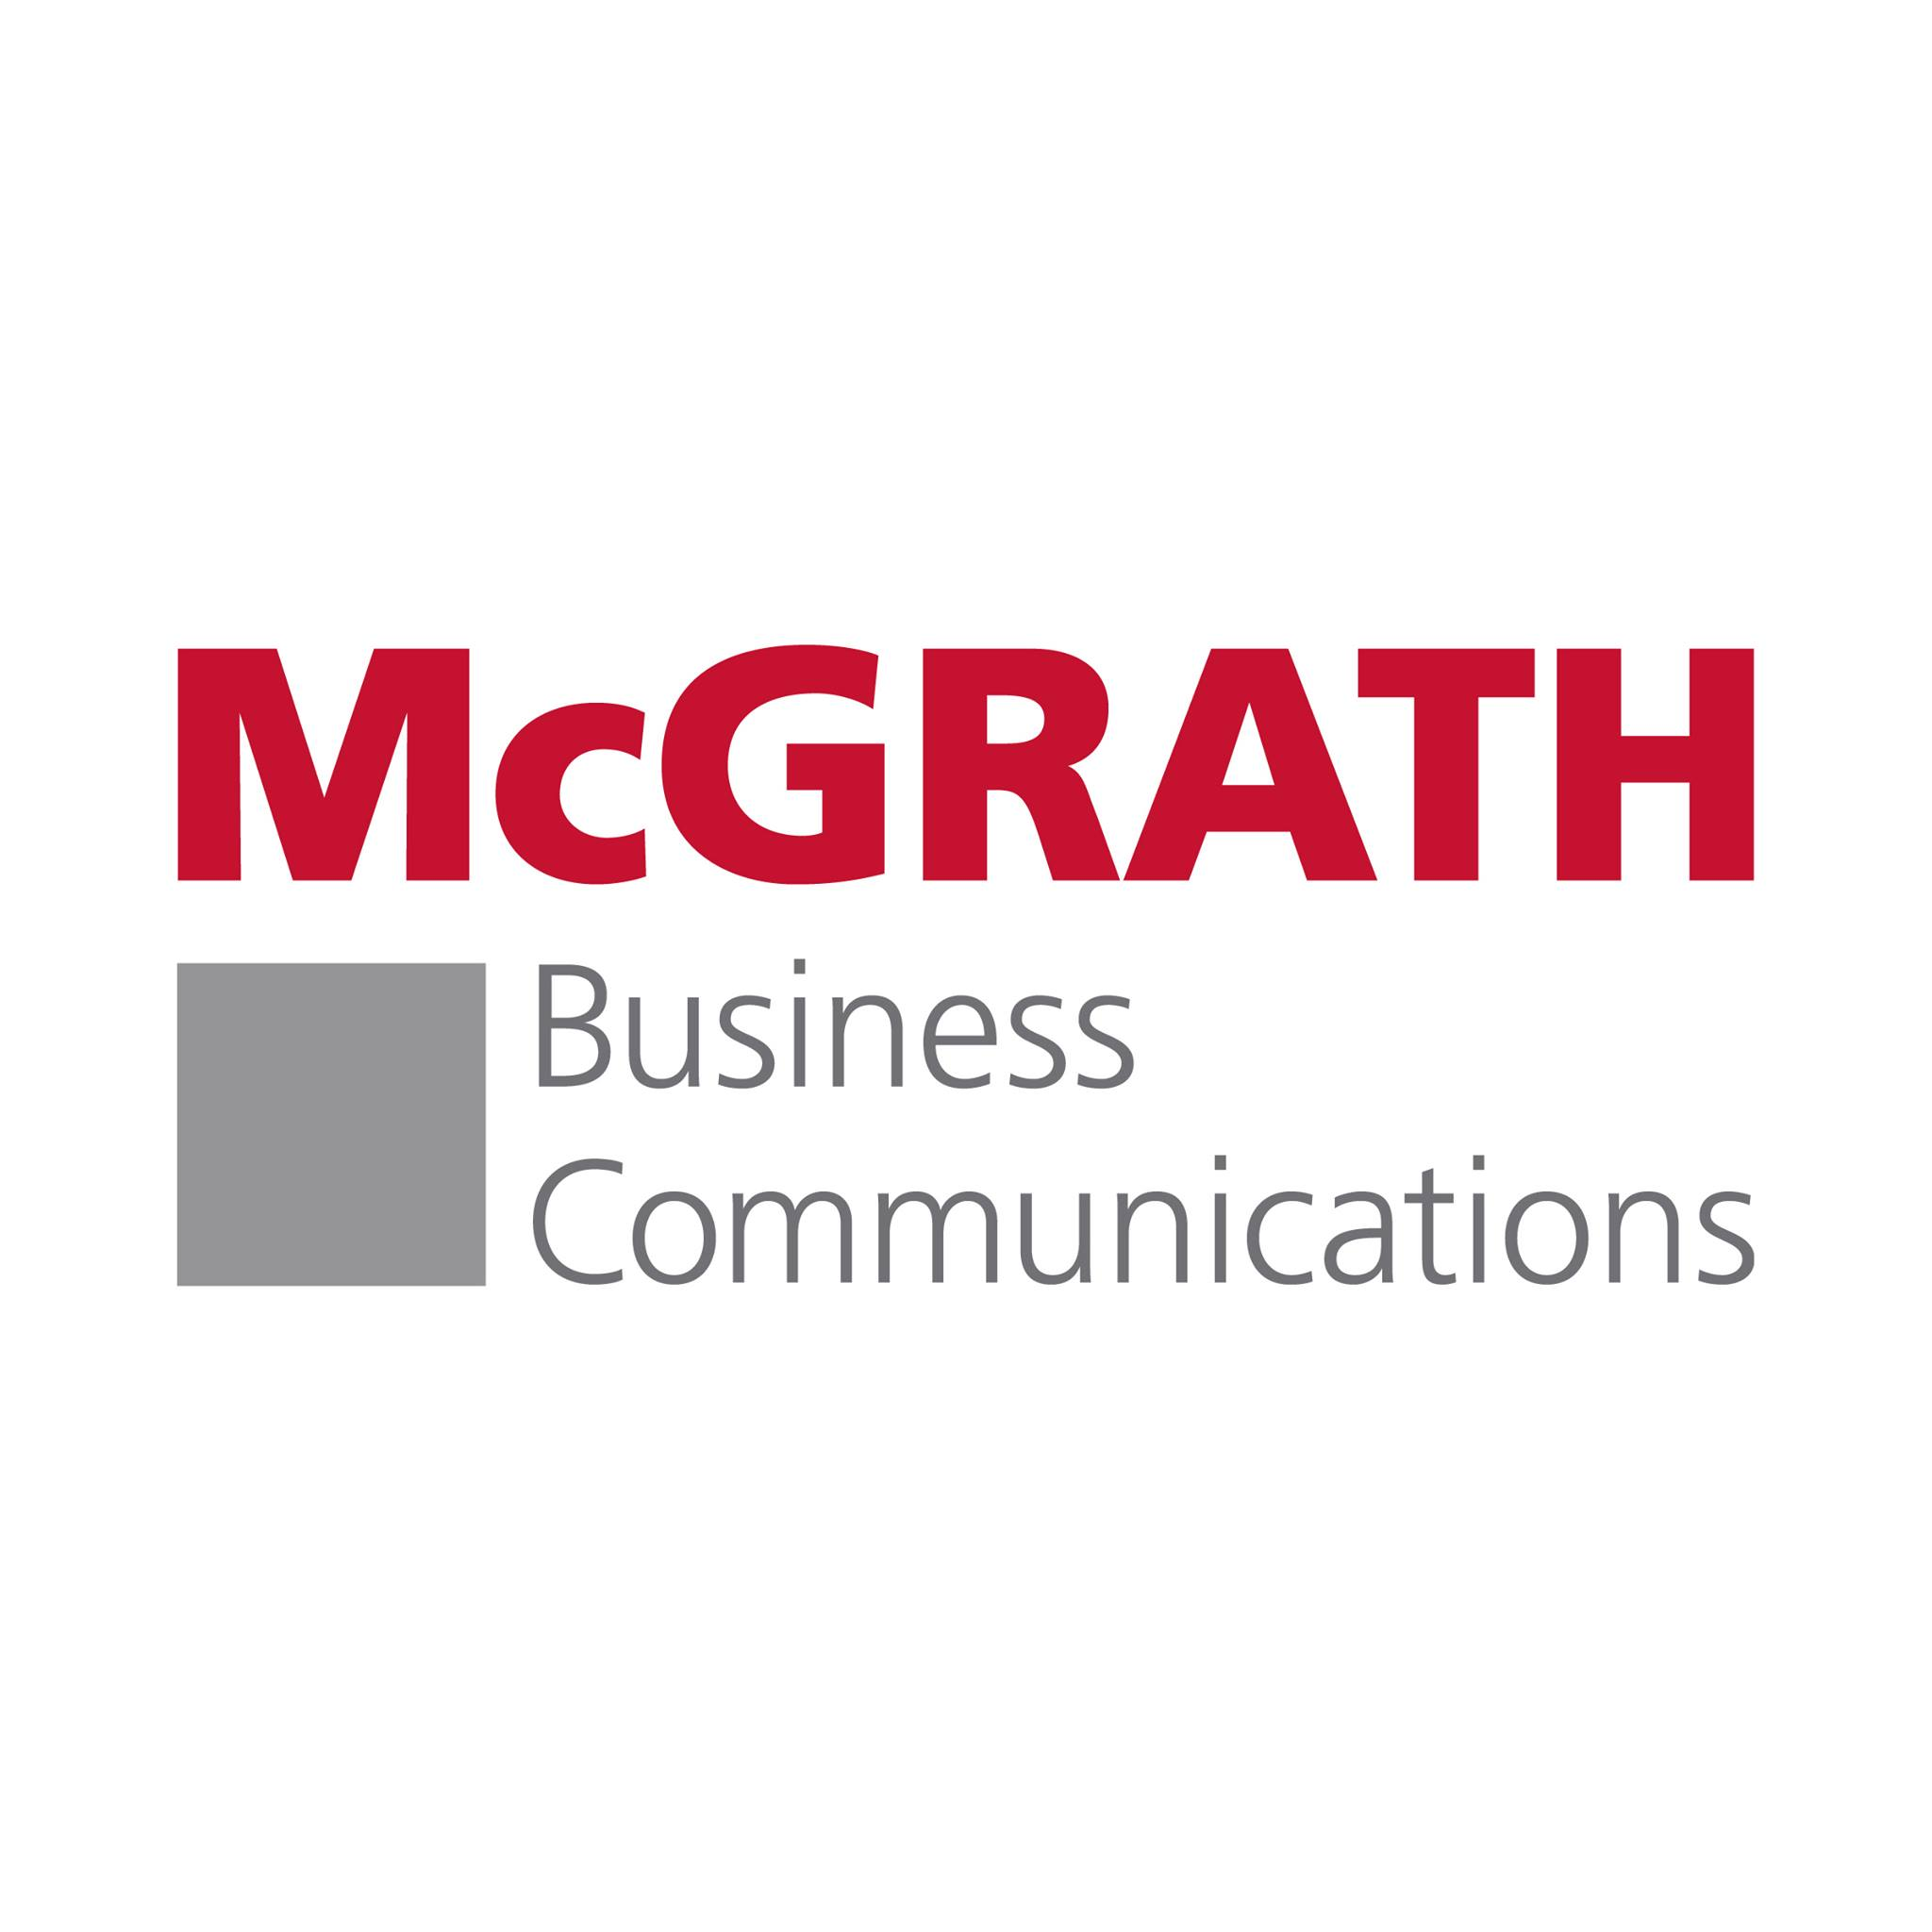 McGrath Business Communications, LLC